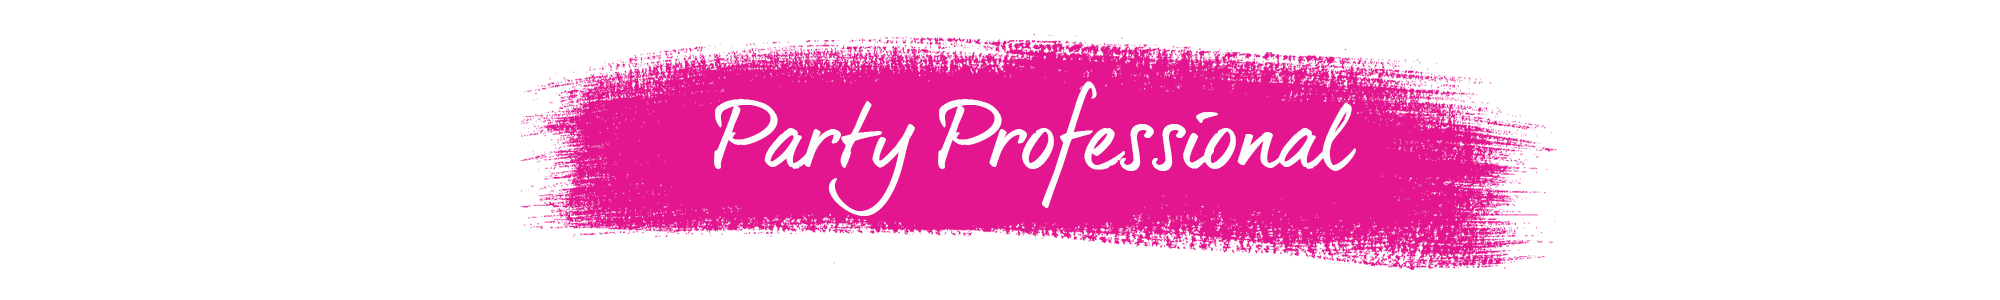 Party Professional Banner